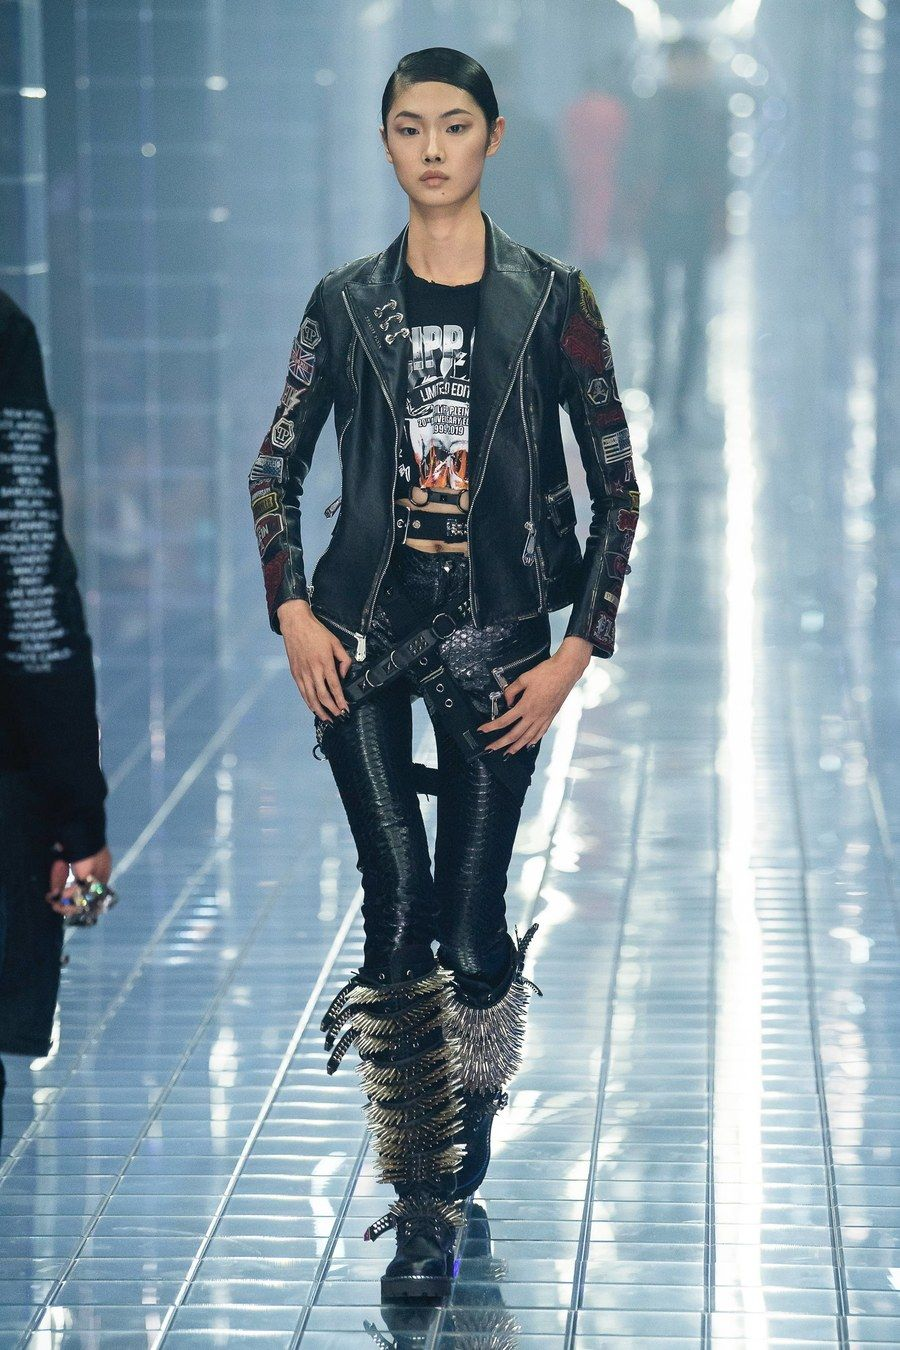 c899a5b114 Philipp Plein Spring 2019 Ready-to-Wear collection, runway looks, beauty,  models, and reviews.